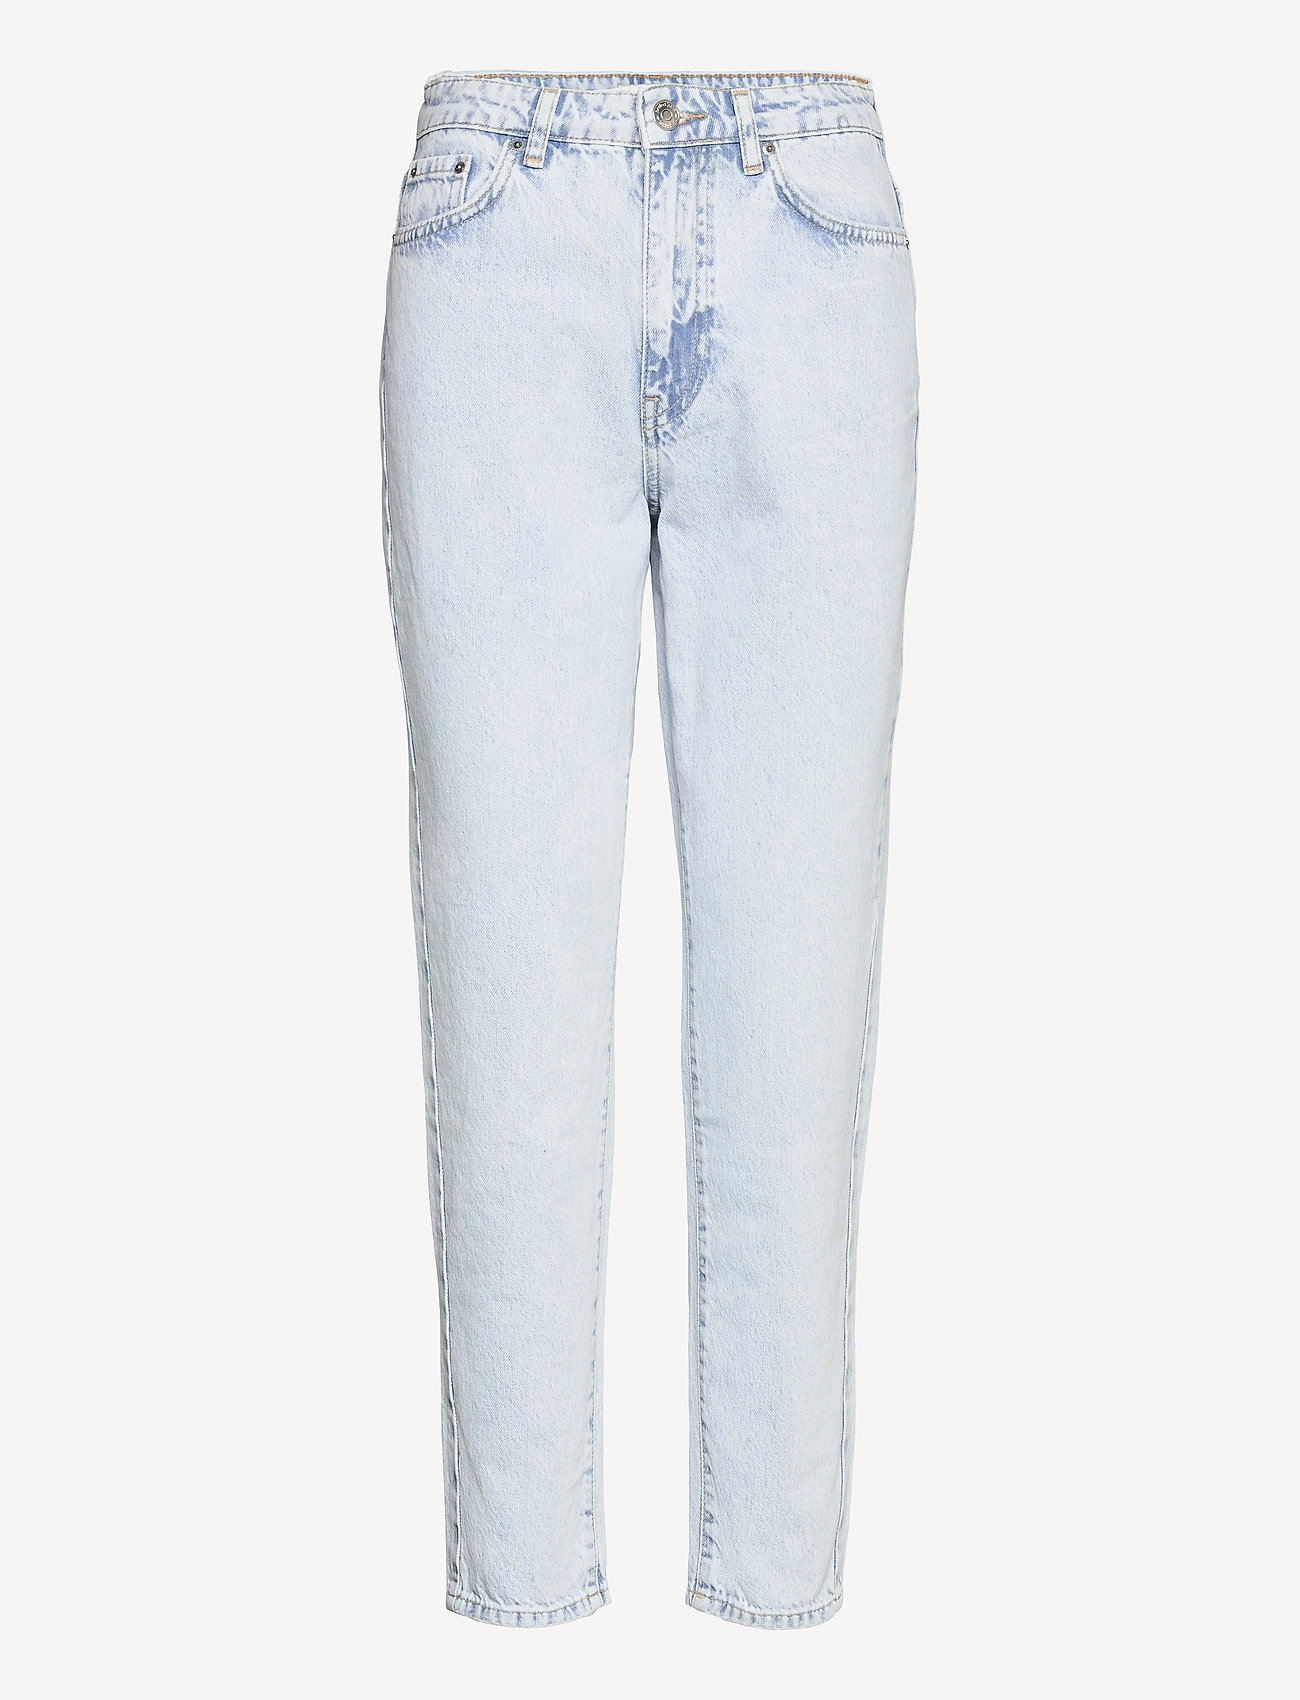 Gina Tricot - Dagny mom jeans - mom jeans - bleached blue (5029) - 0